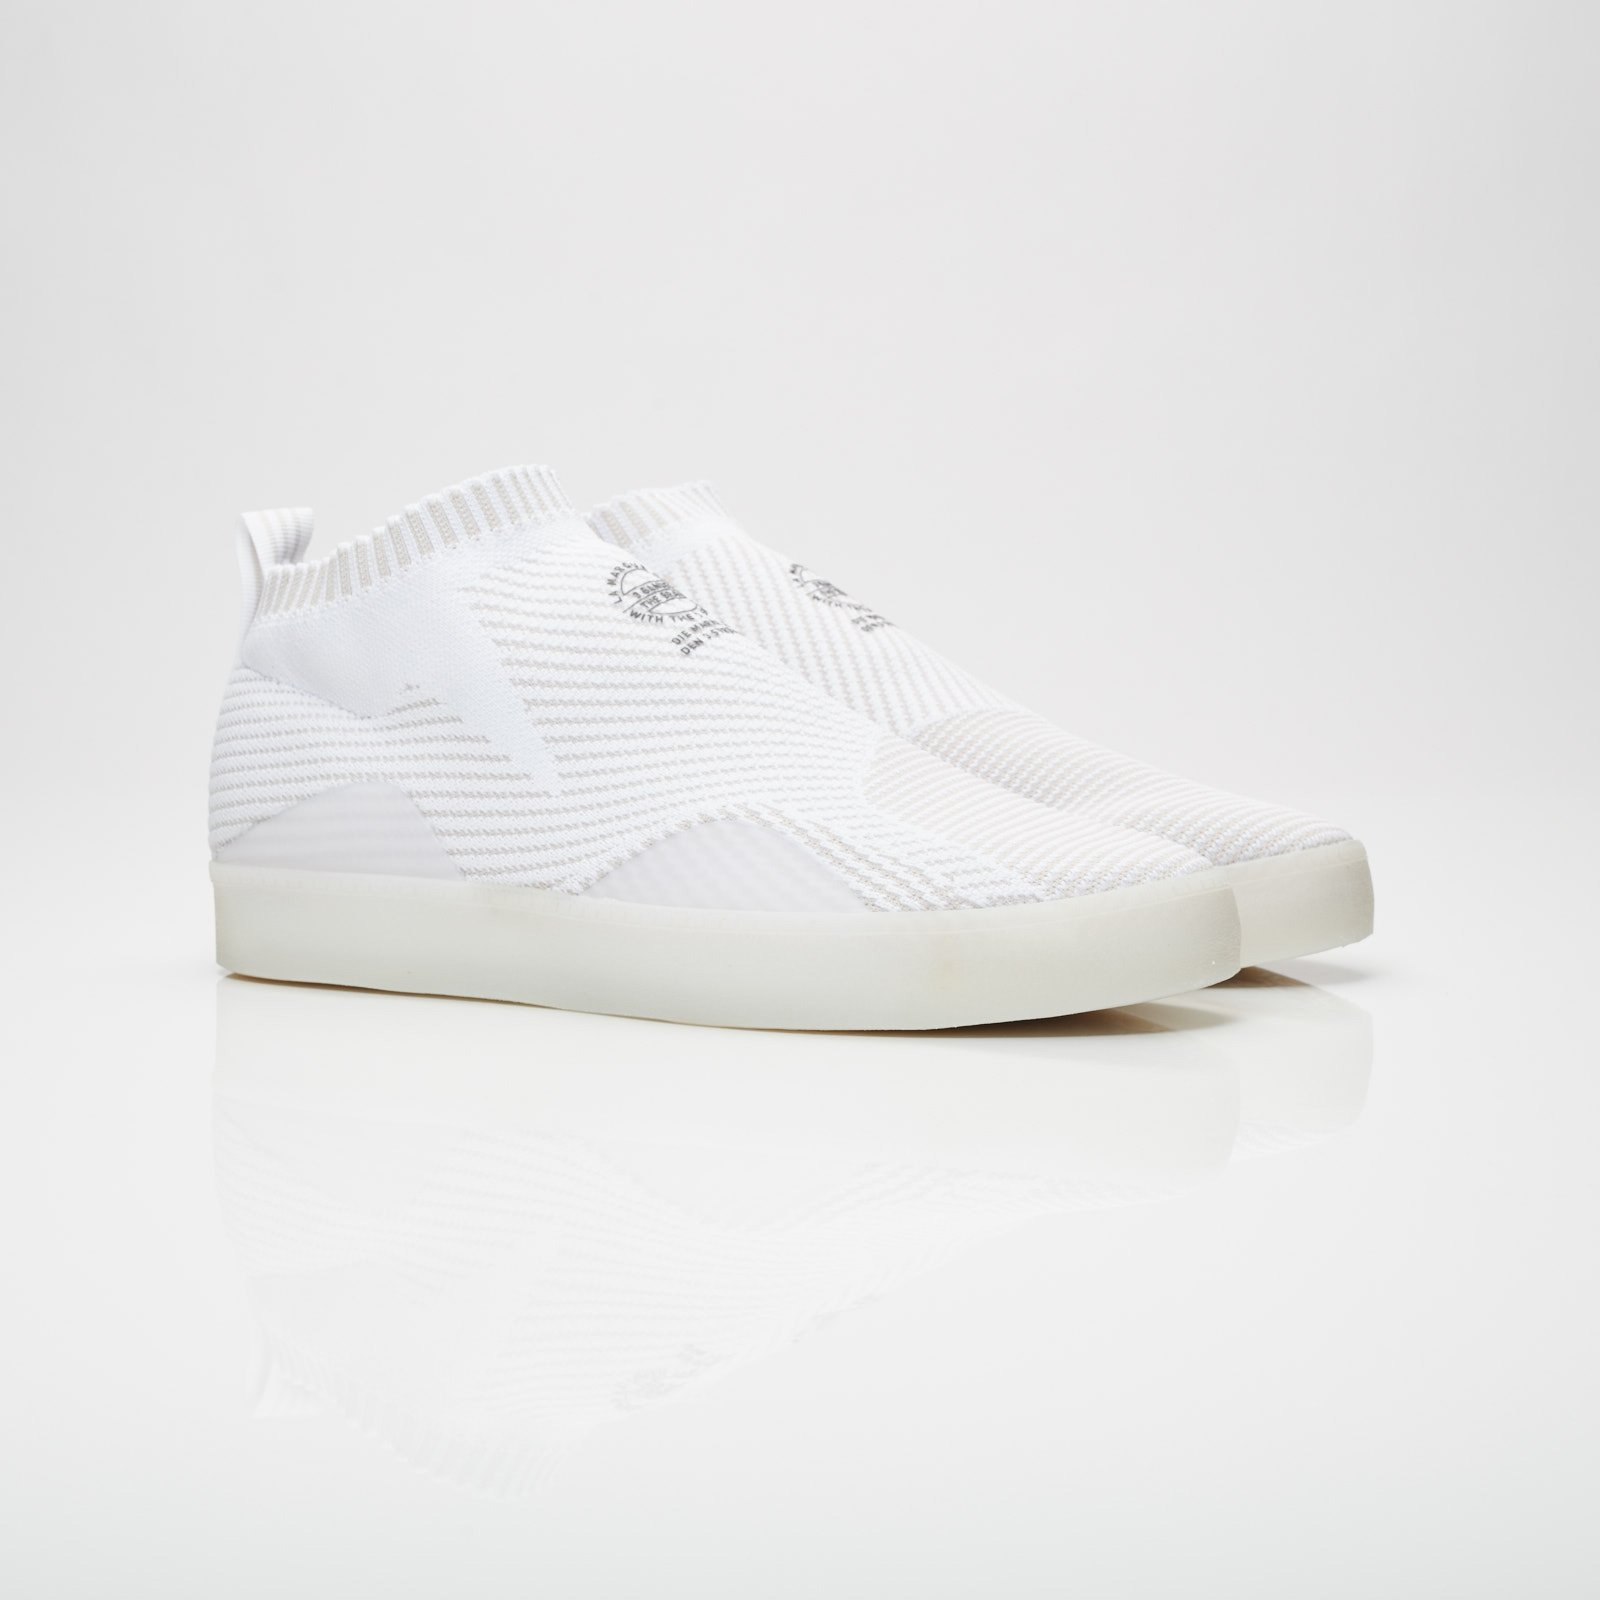 outlet store 3e4cd 1e2ee adidas Originals 3ST.002 PK